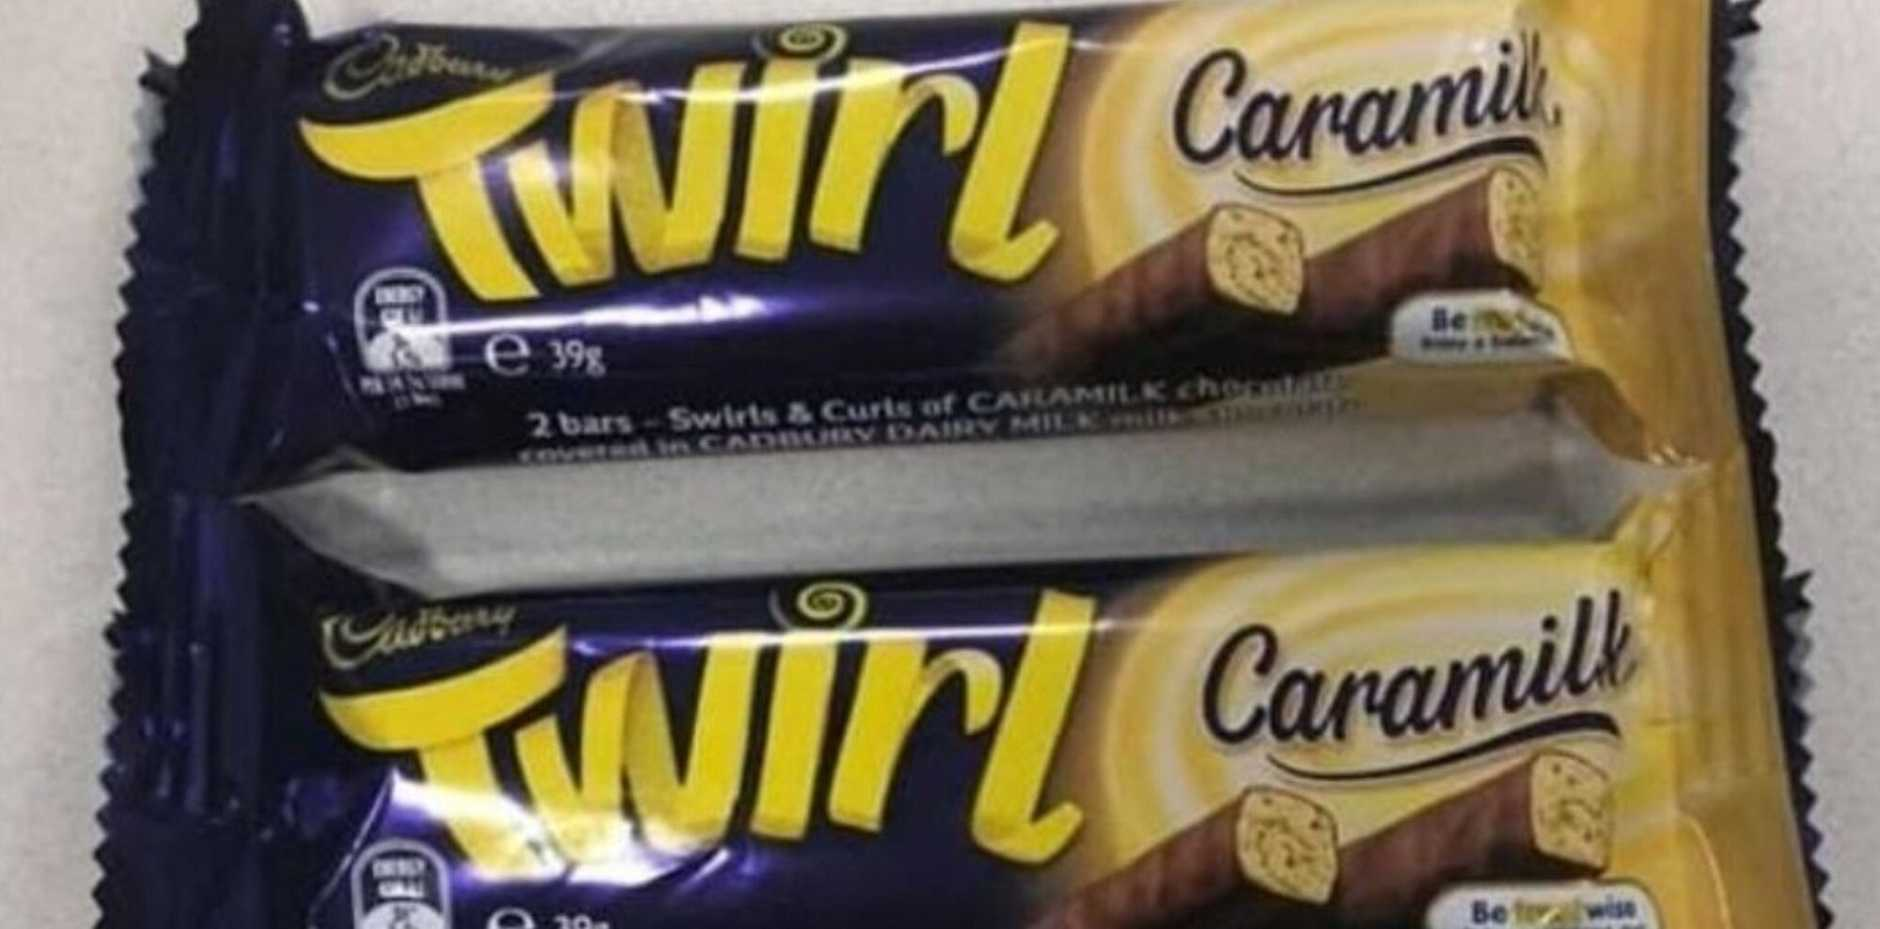 The brand is soon releasing a Twirl edition of a Caramilk bar. Picture: Twitter